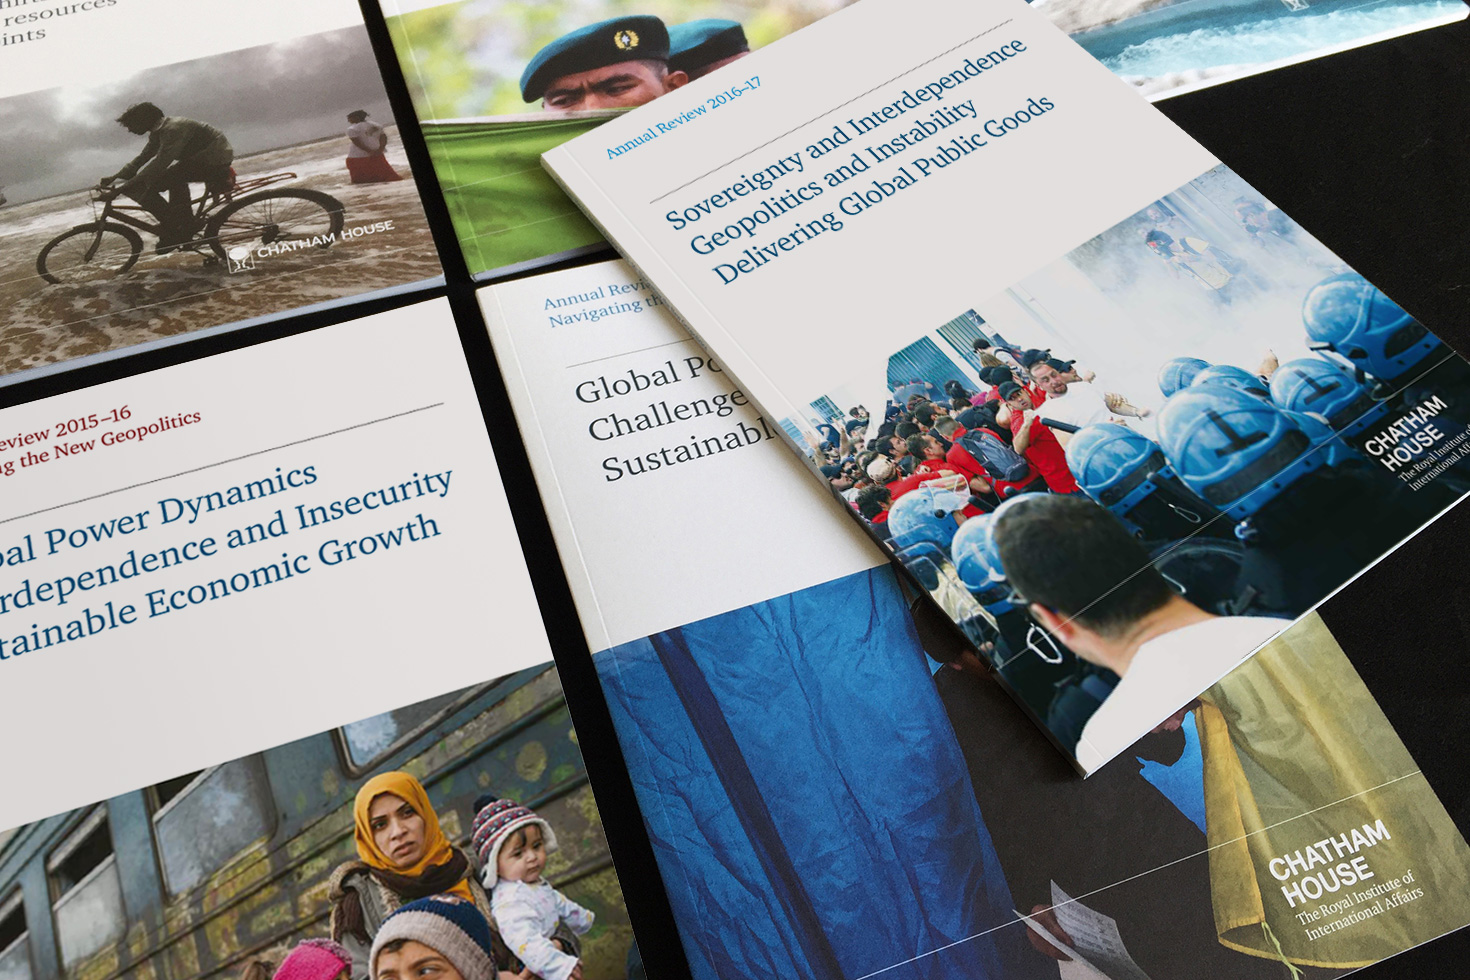 Chatham House annual reports